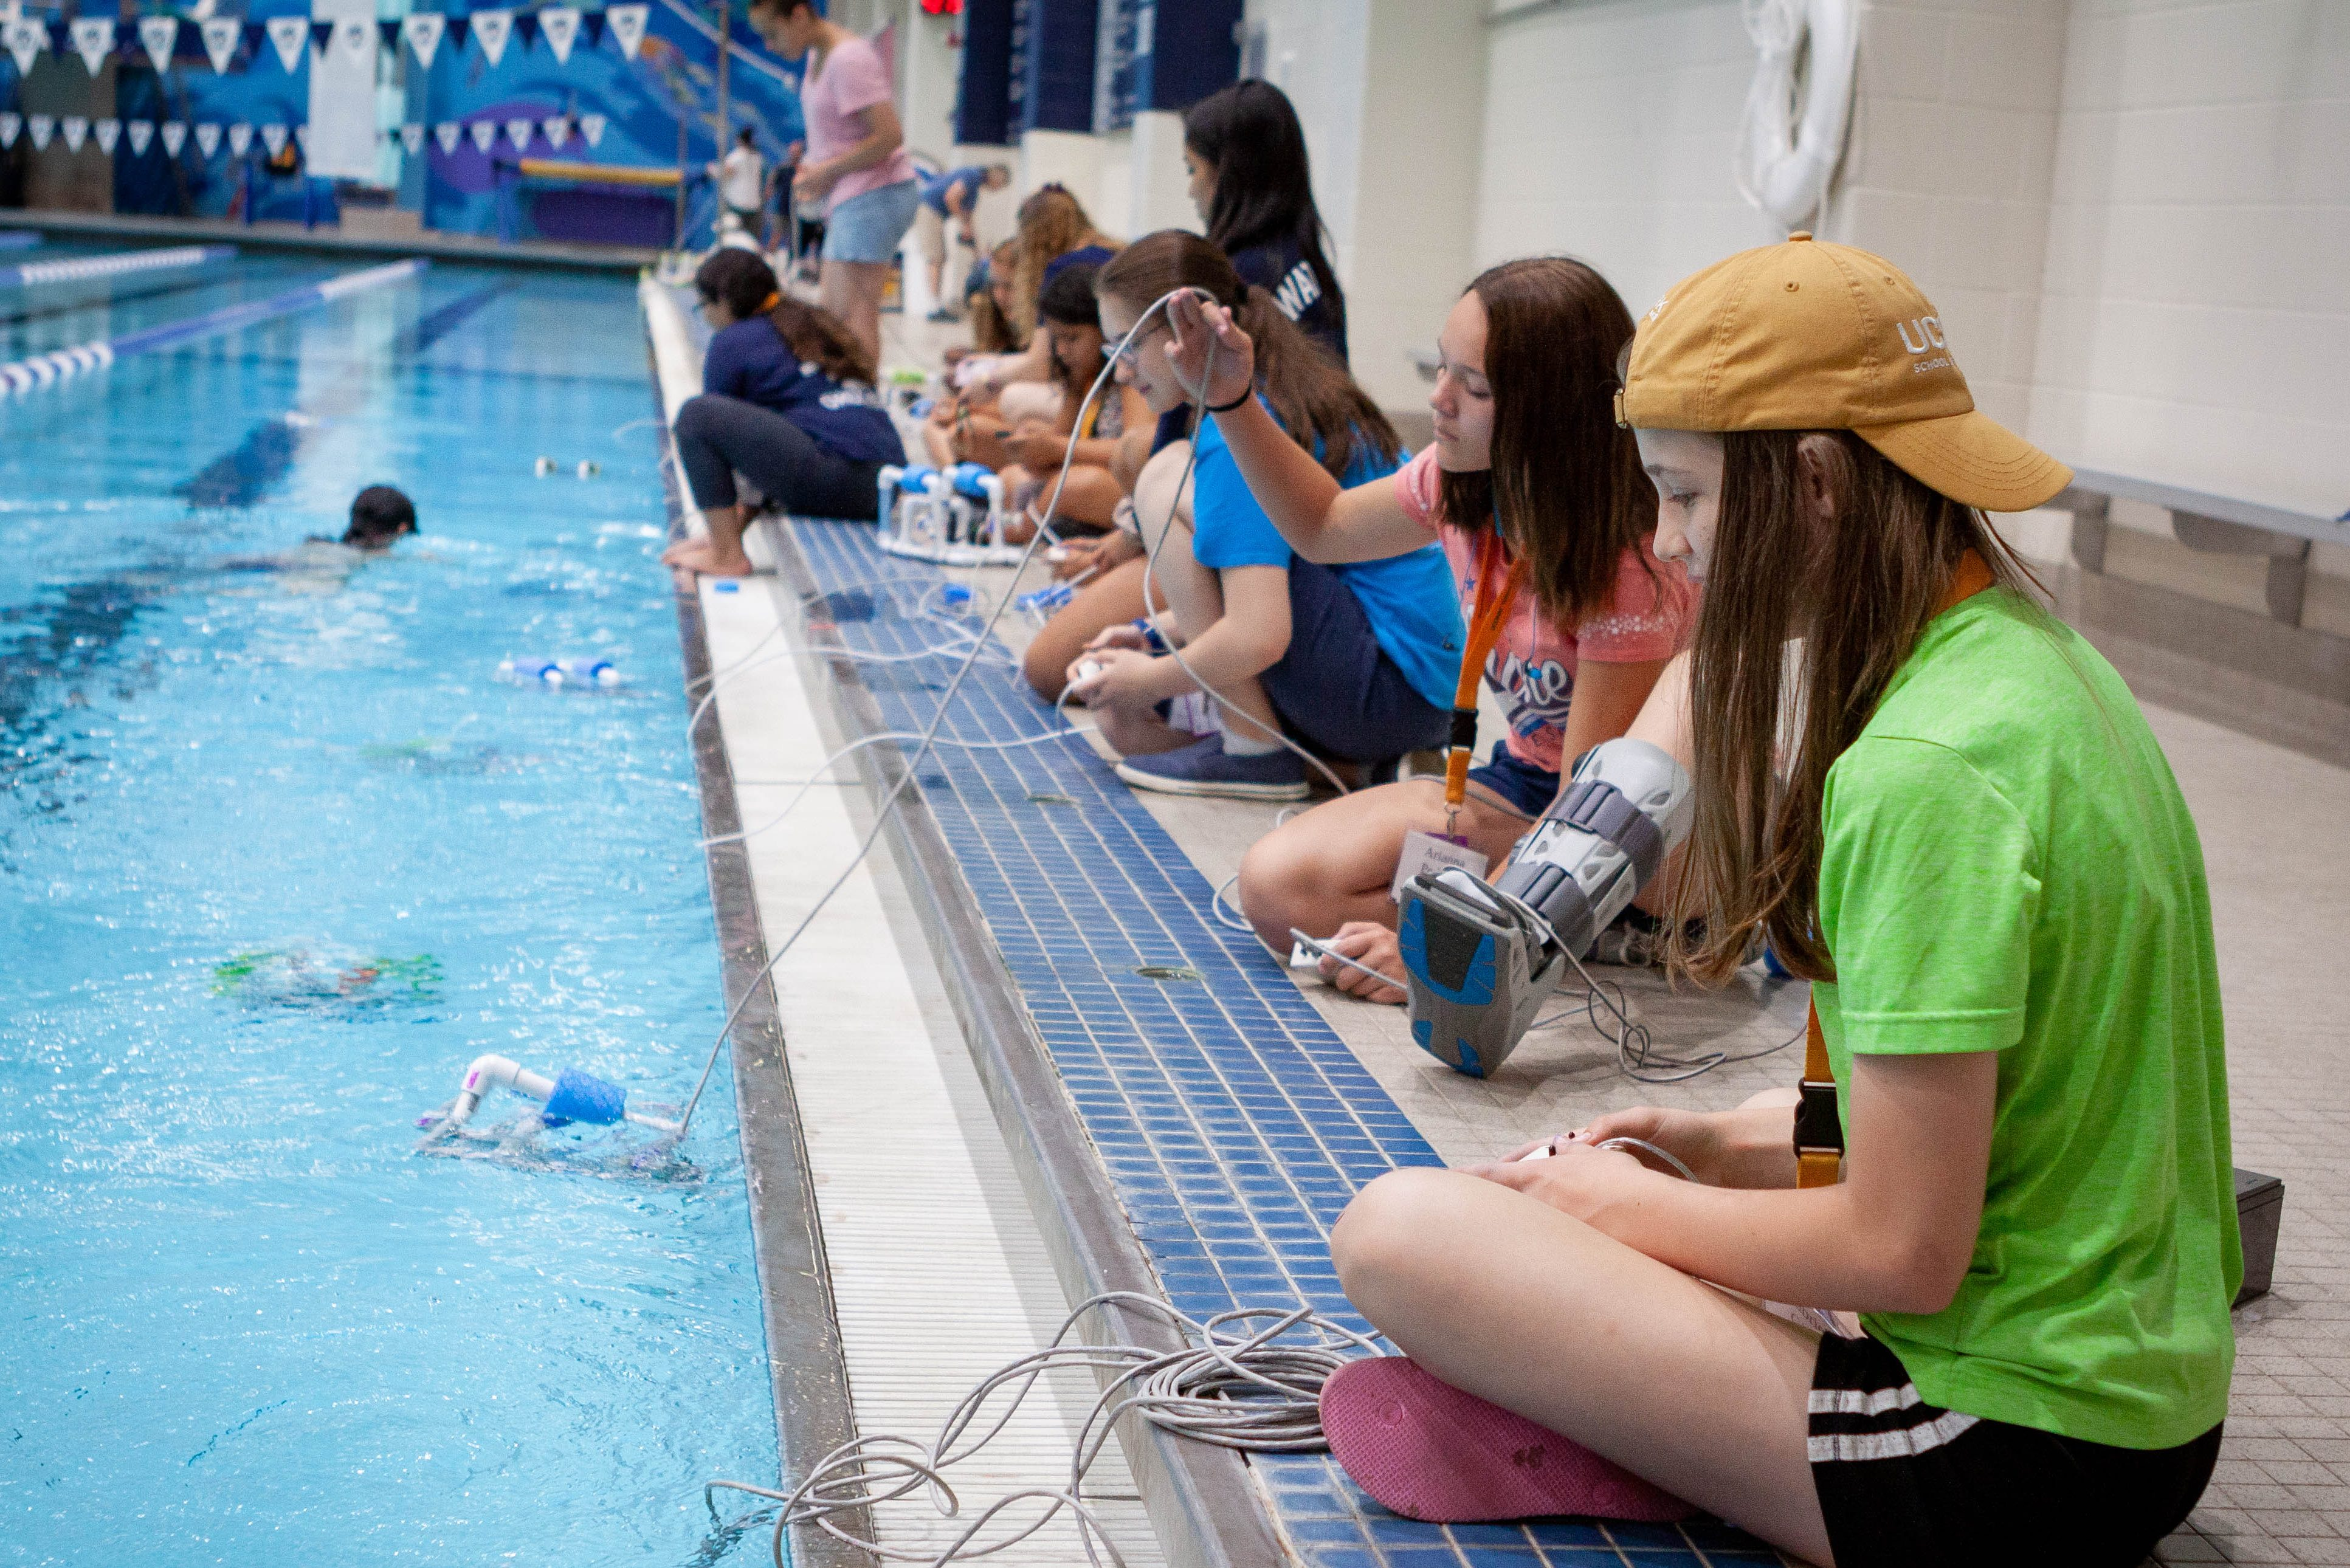 A group of SPARK campers work on their underwater robots in the UConn Wolff-Zackin Natatorium during the summer of 2019. SPARK seeks to mentor and encourage 7th-9th grade females to enter the STEM fields through overnight summer camps. (UConn Photo/Christopher LaRosa)